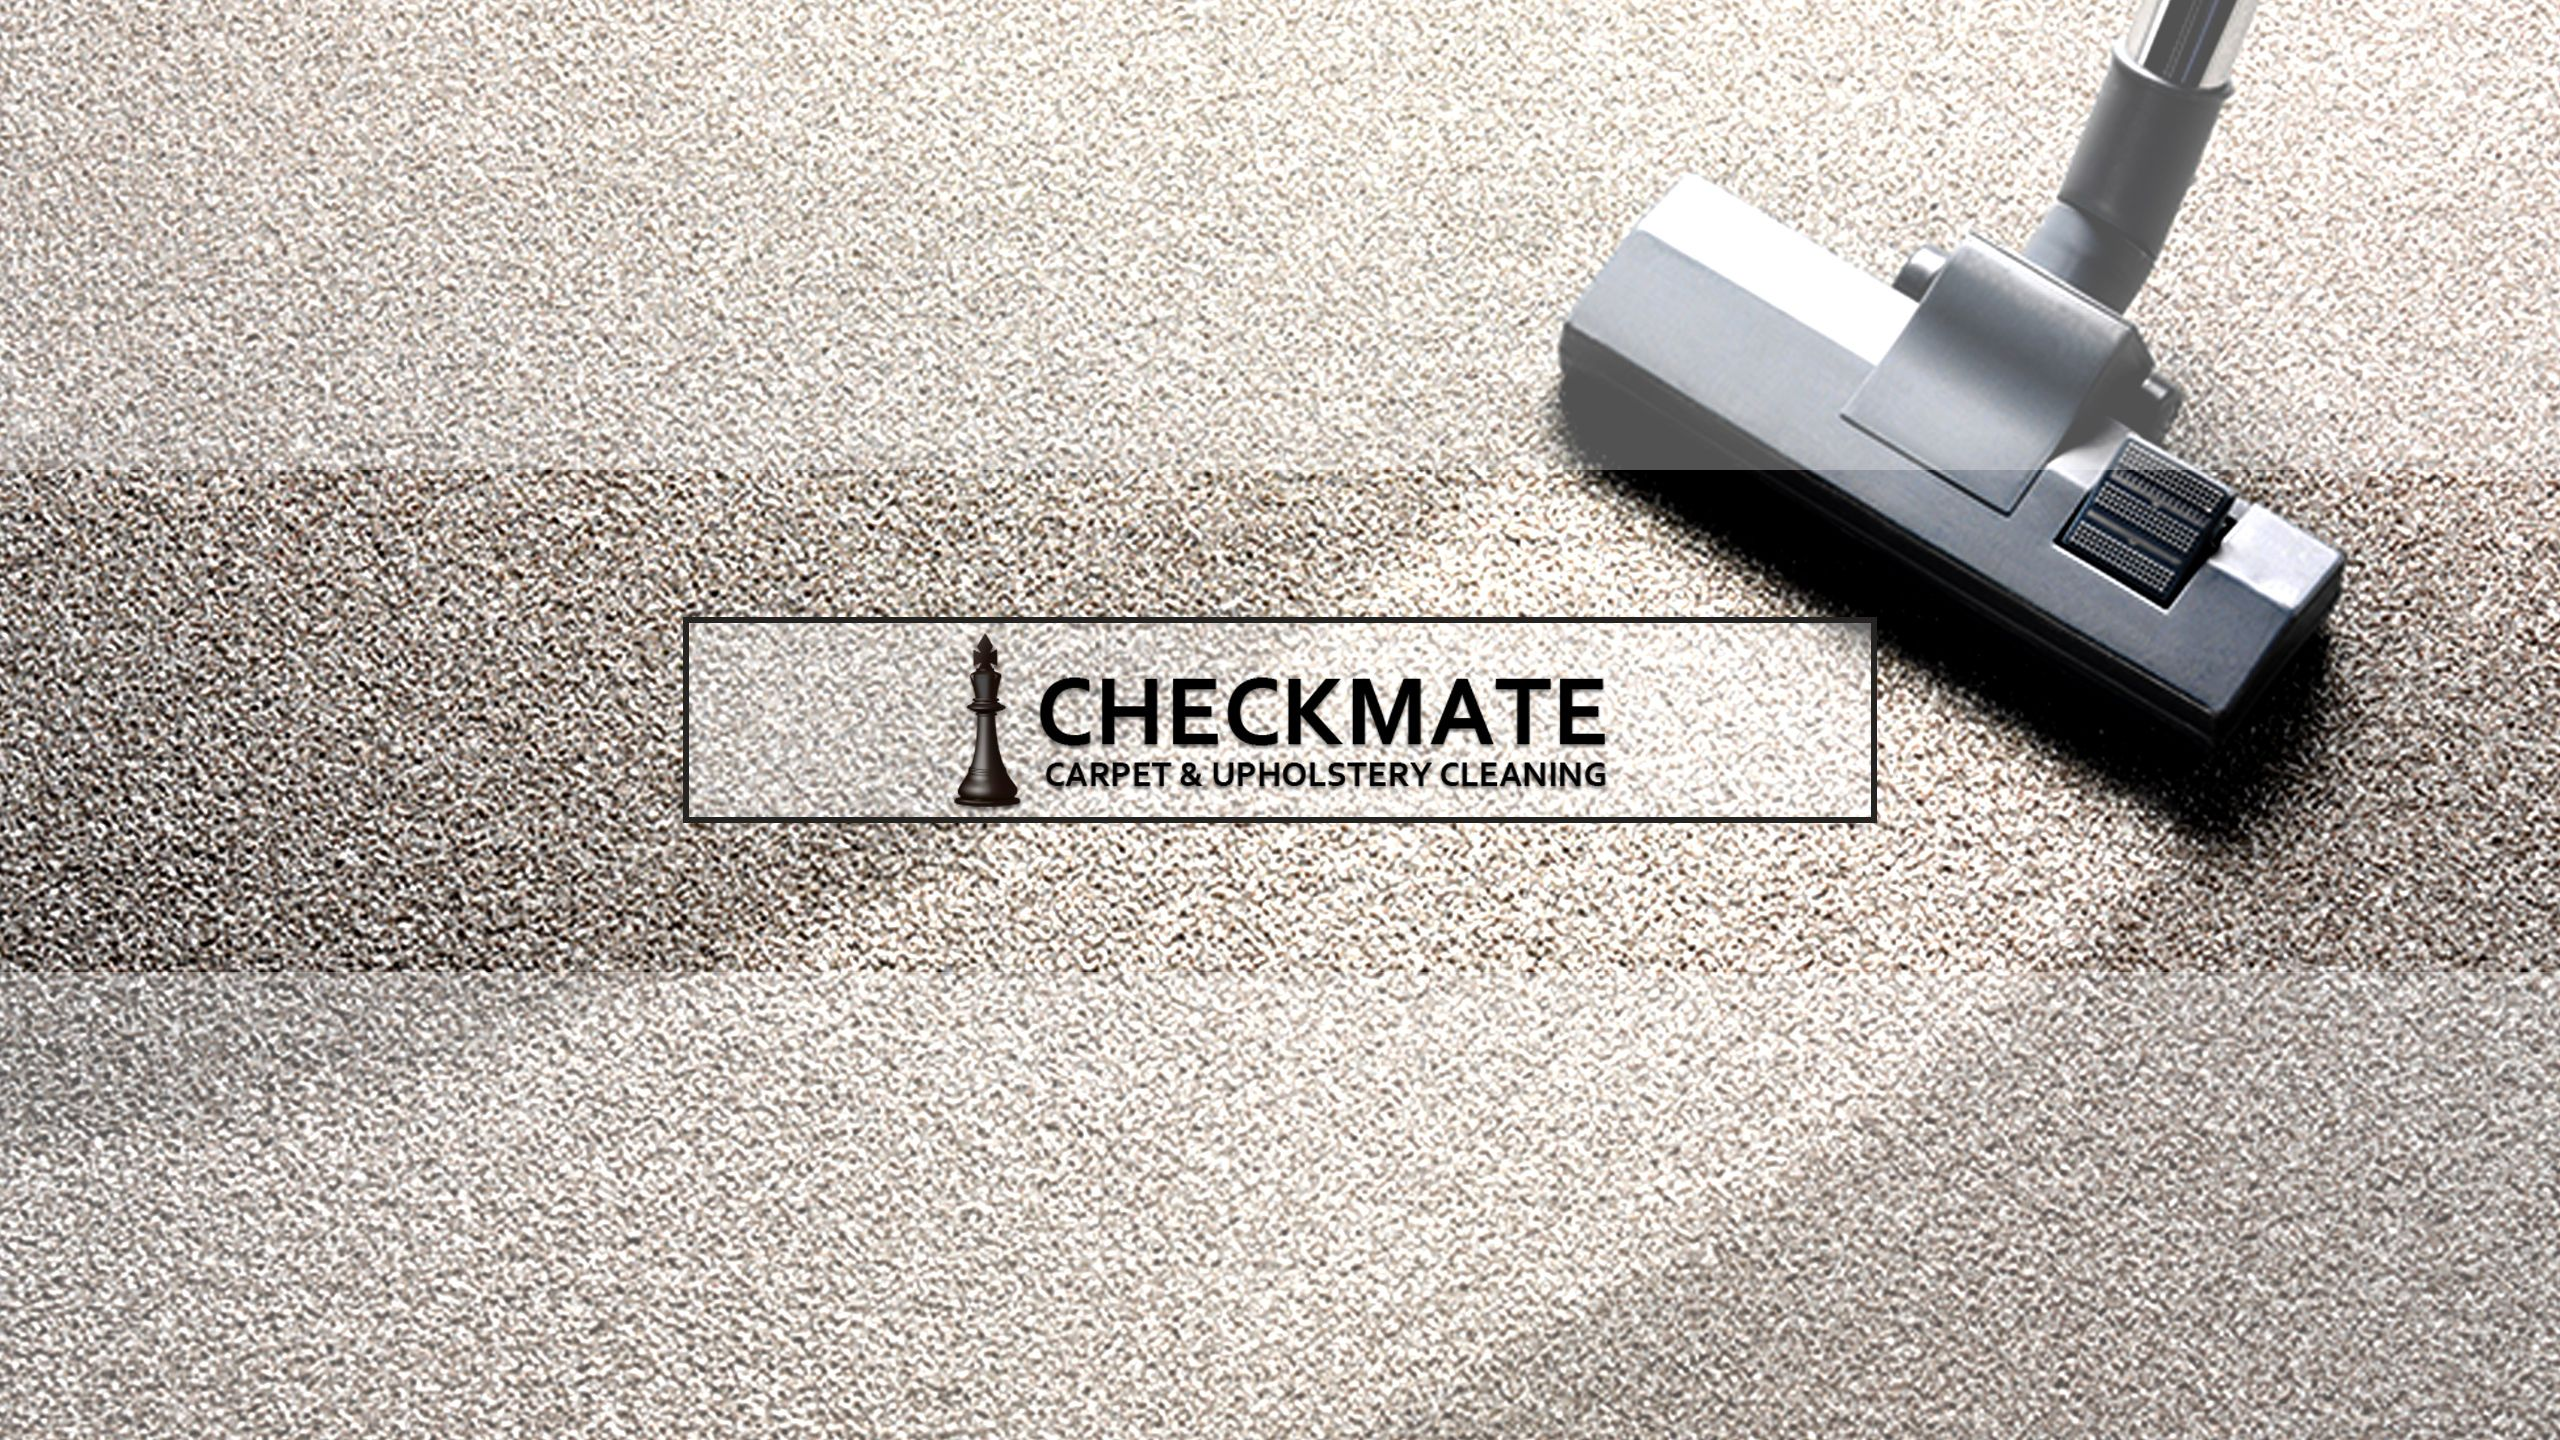 checkmate carpet cleaning is a carpet cleaning company in vancouver